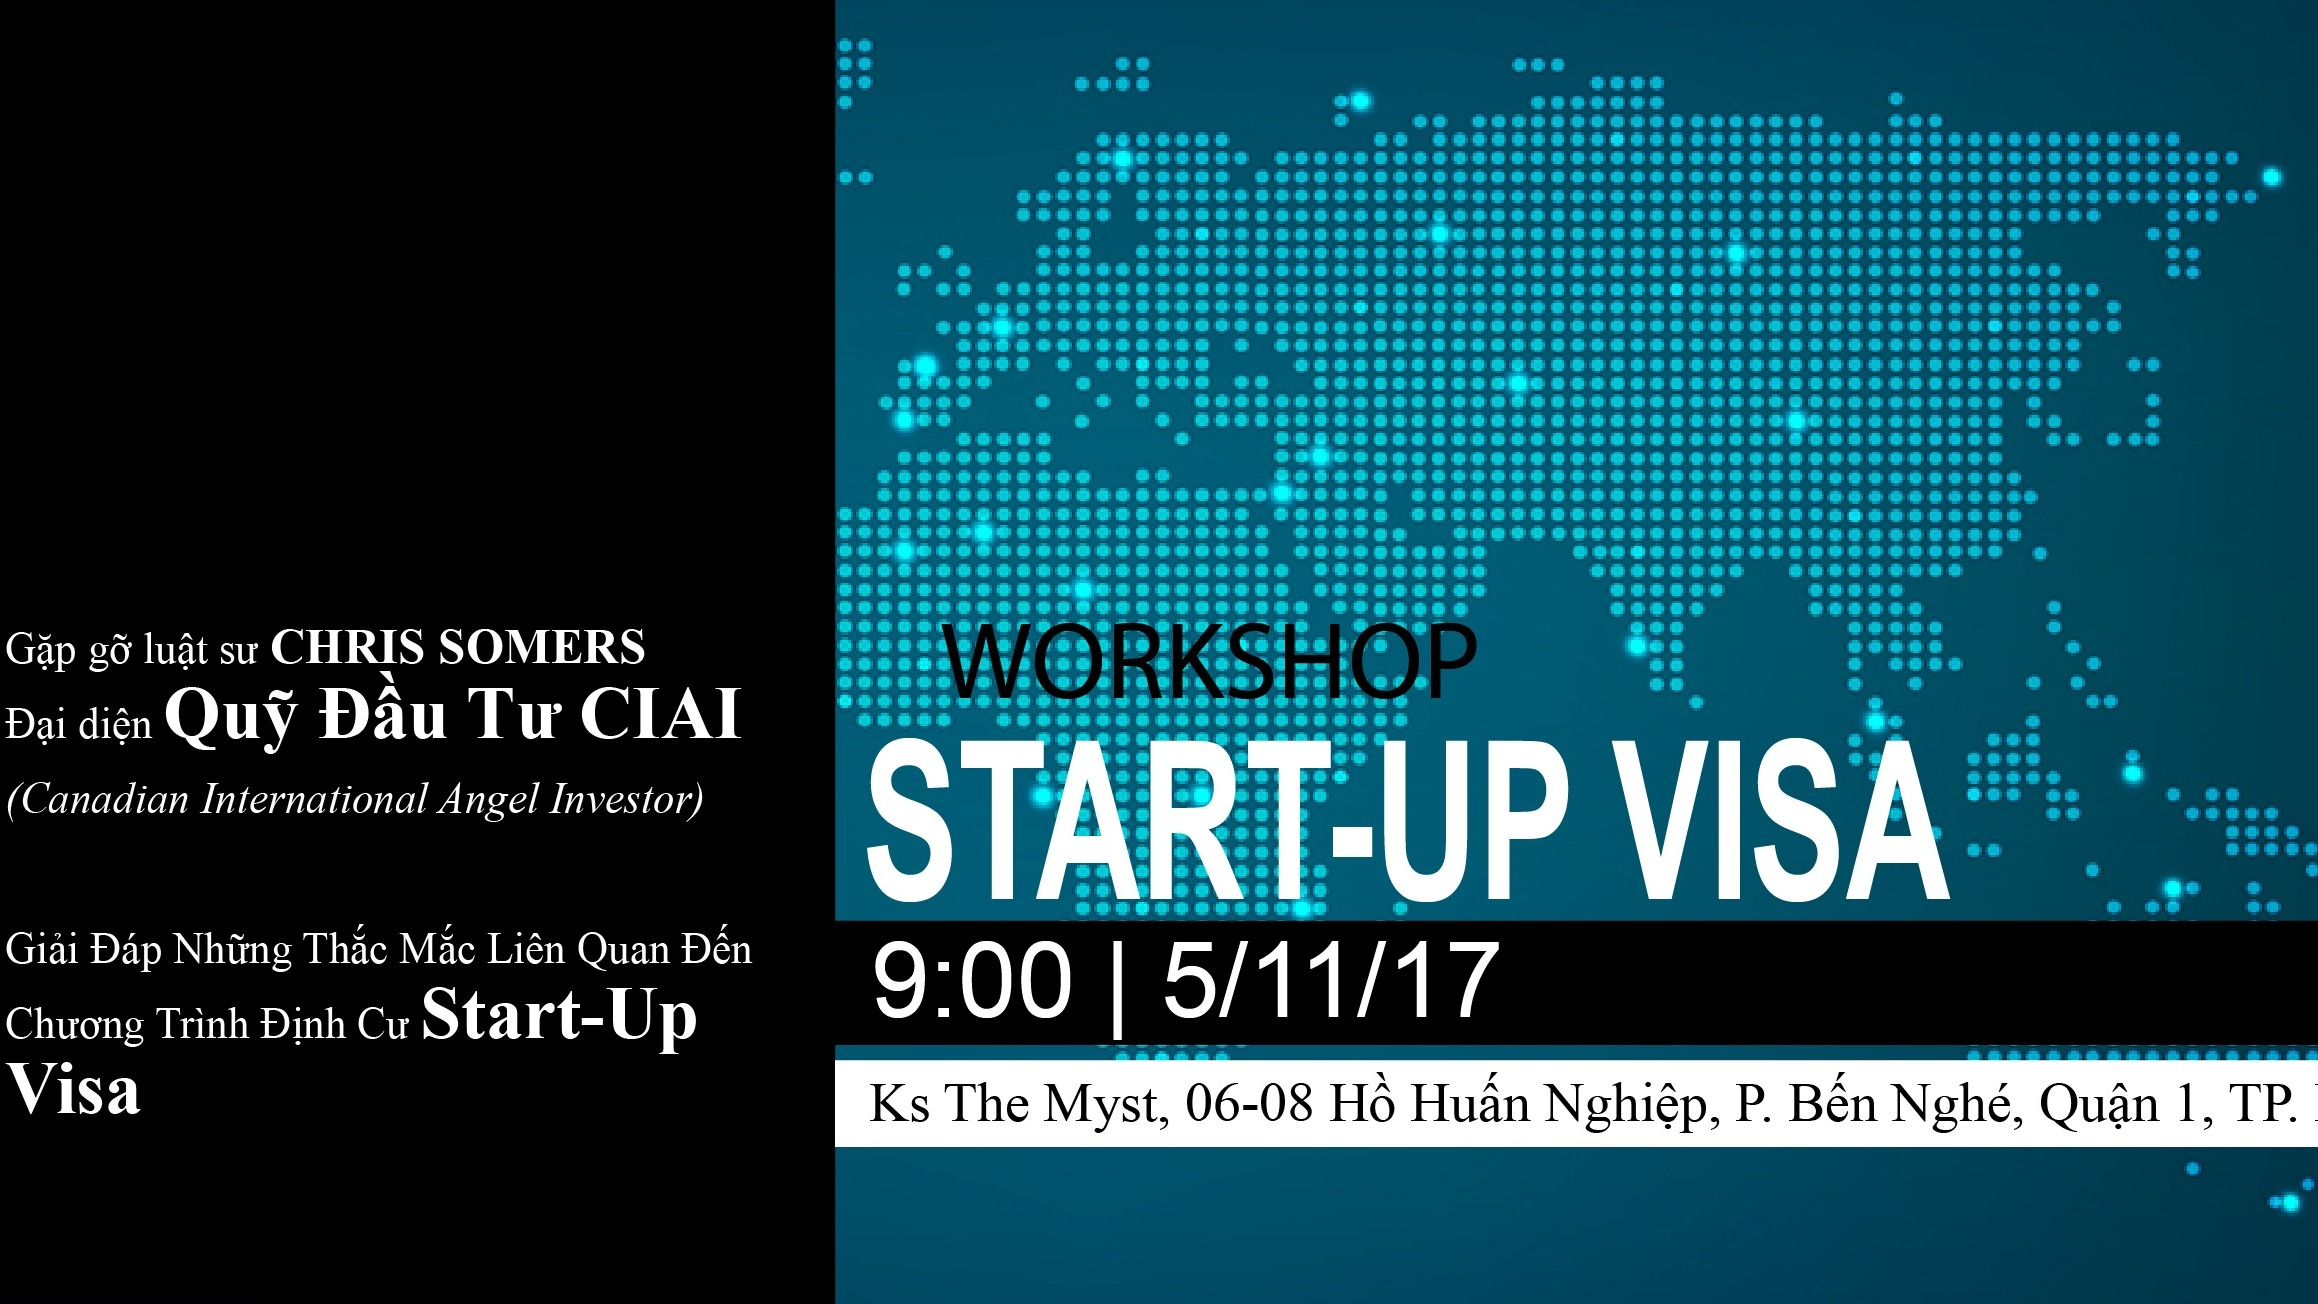 workshop-start-up-visa---maple-leaf-vietnam